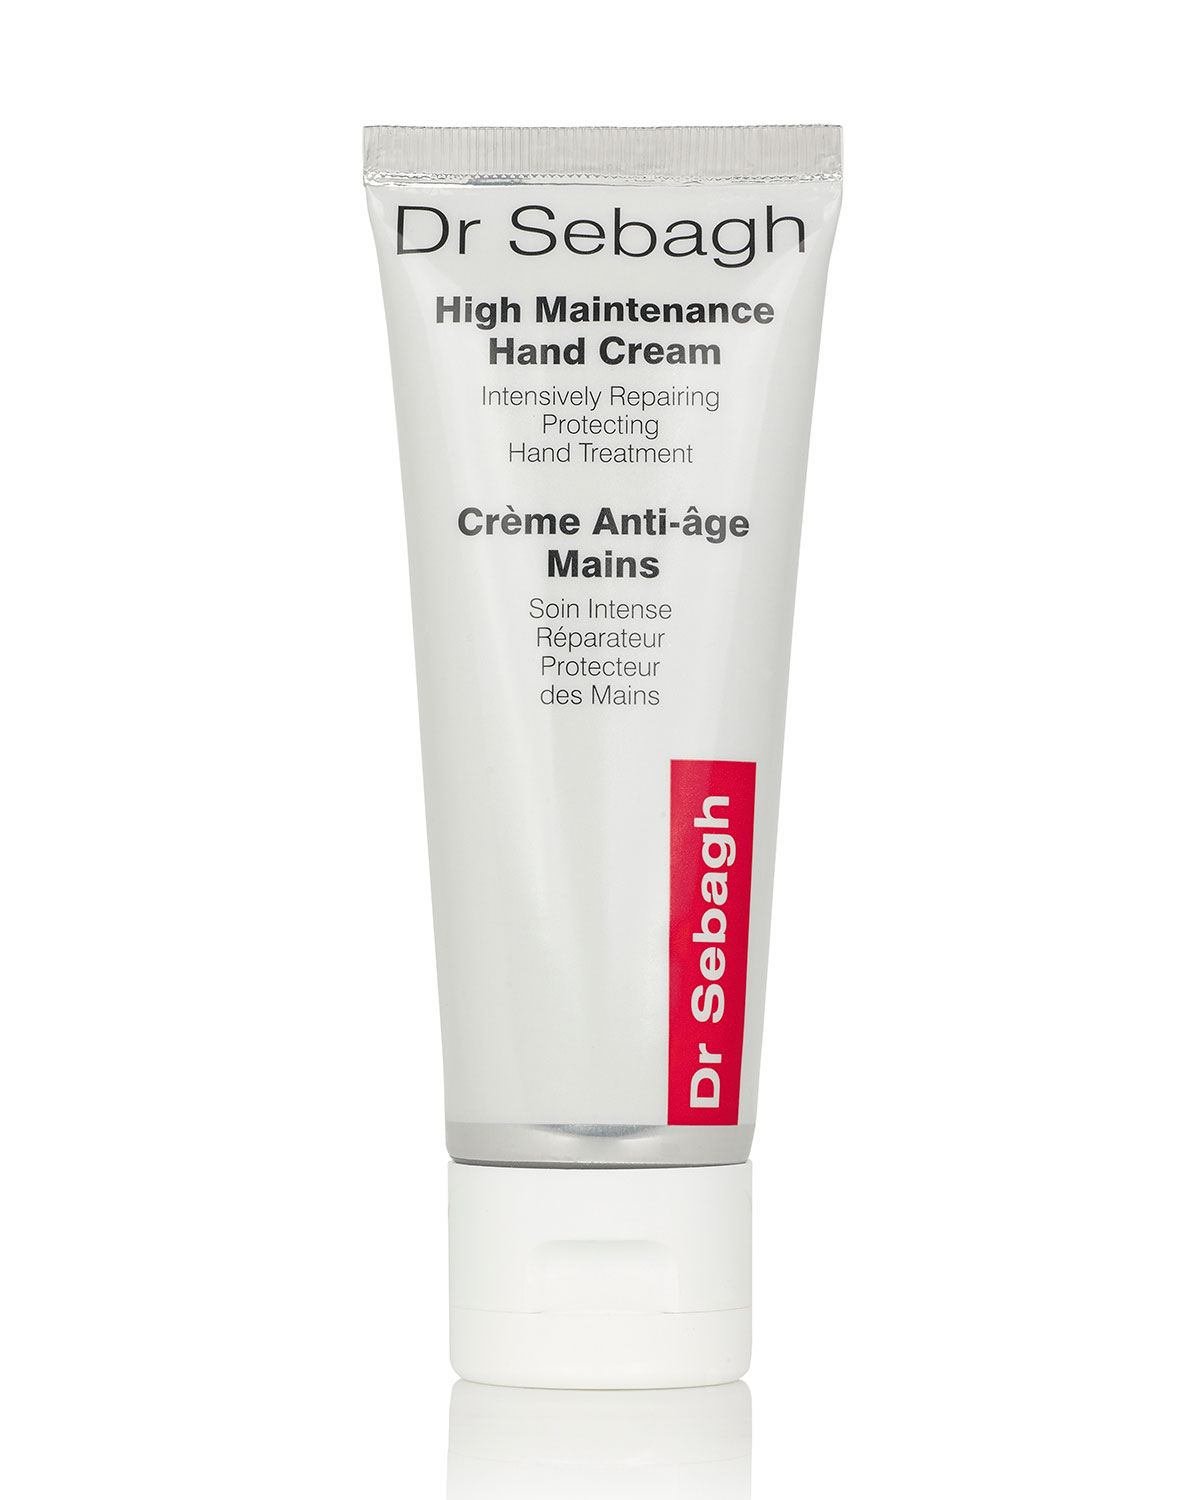 Dr Sebagh 2.5 oz. High Maintenance Hand Cream